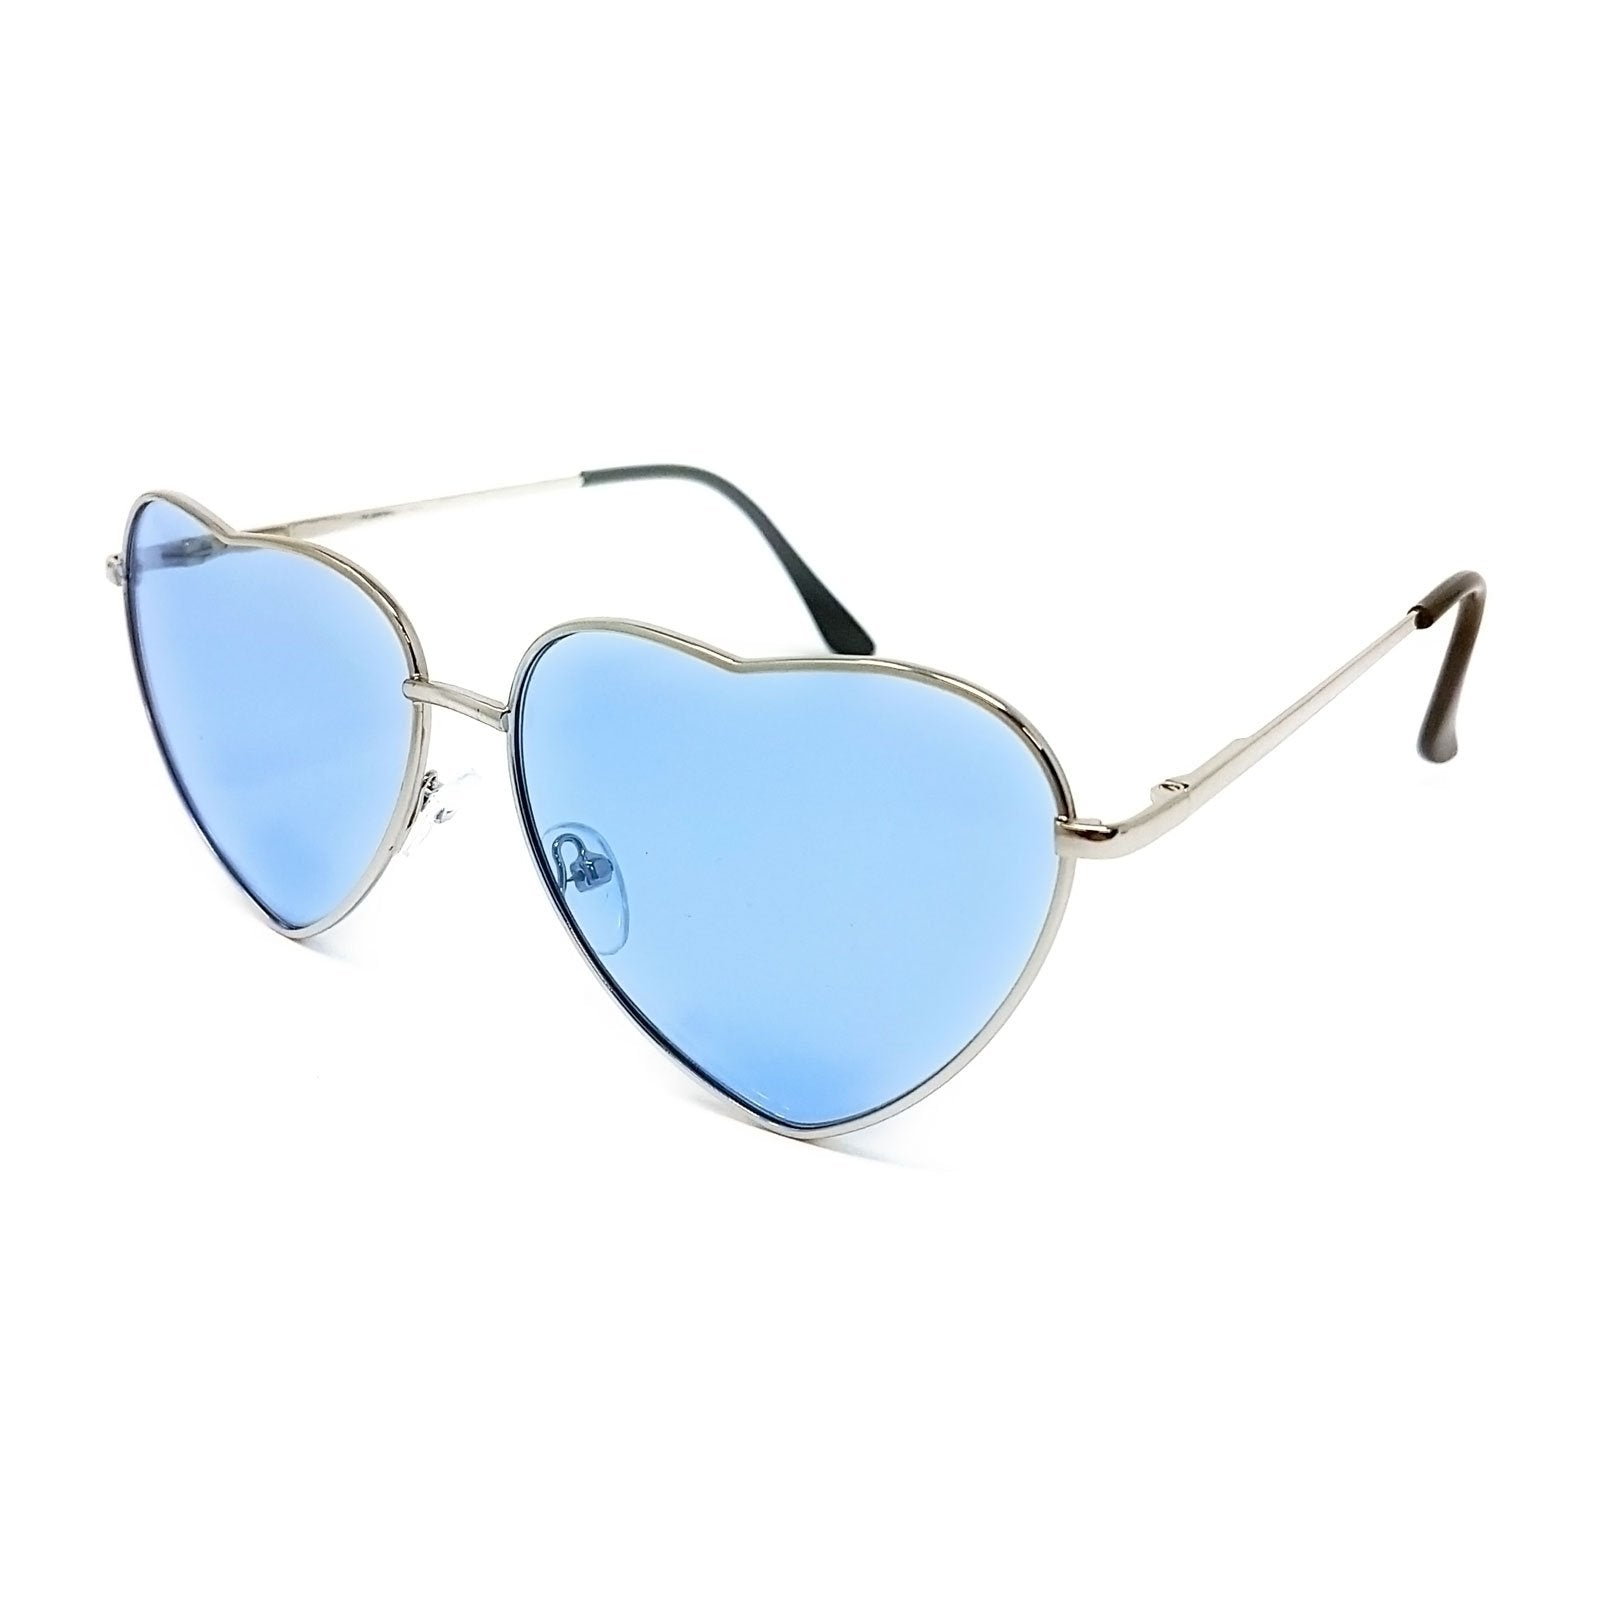 Wholesale Heart Shape Sunglasses - Silver Frame, Light Blue Lens